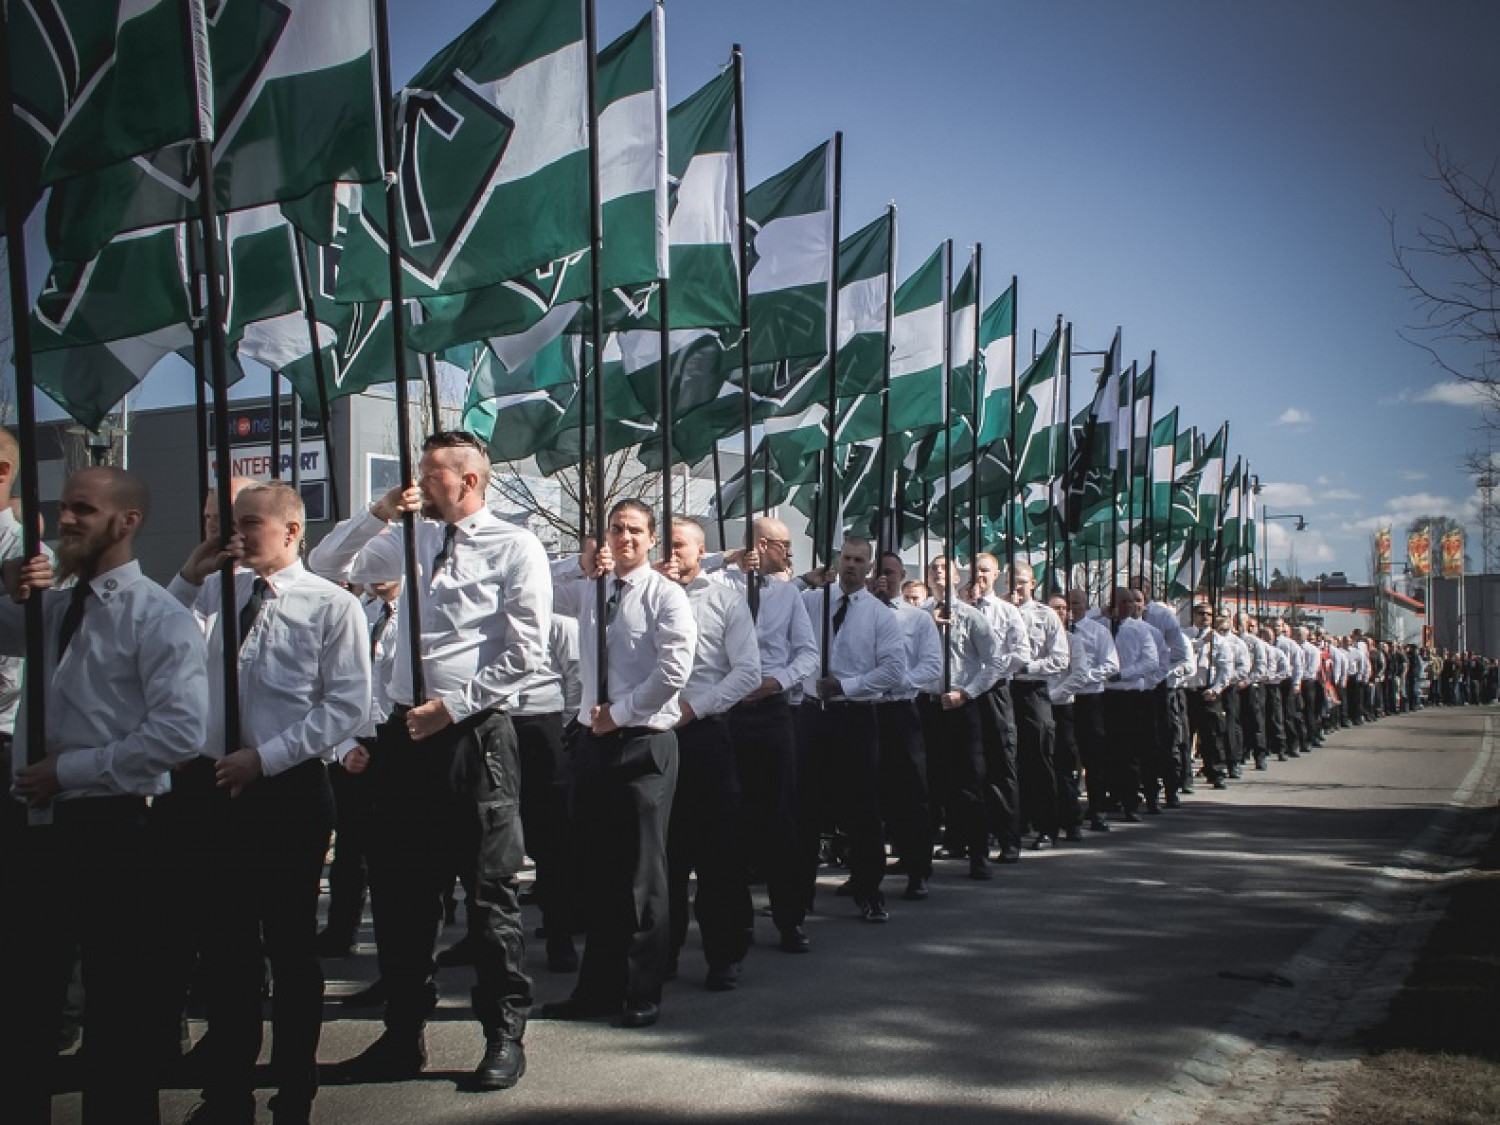 Nordic Resistance Movement march in Falun, Sweden